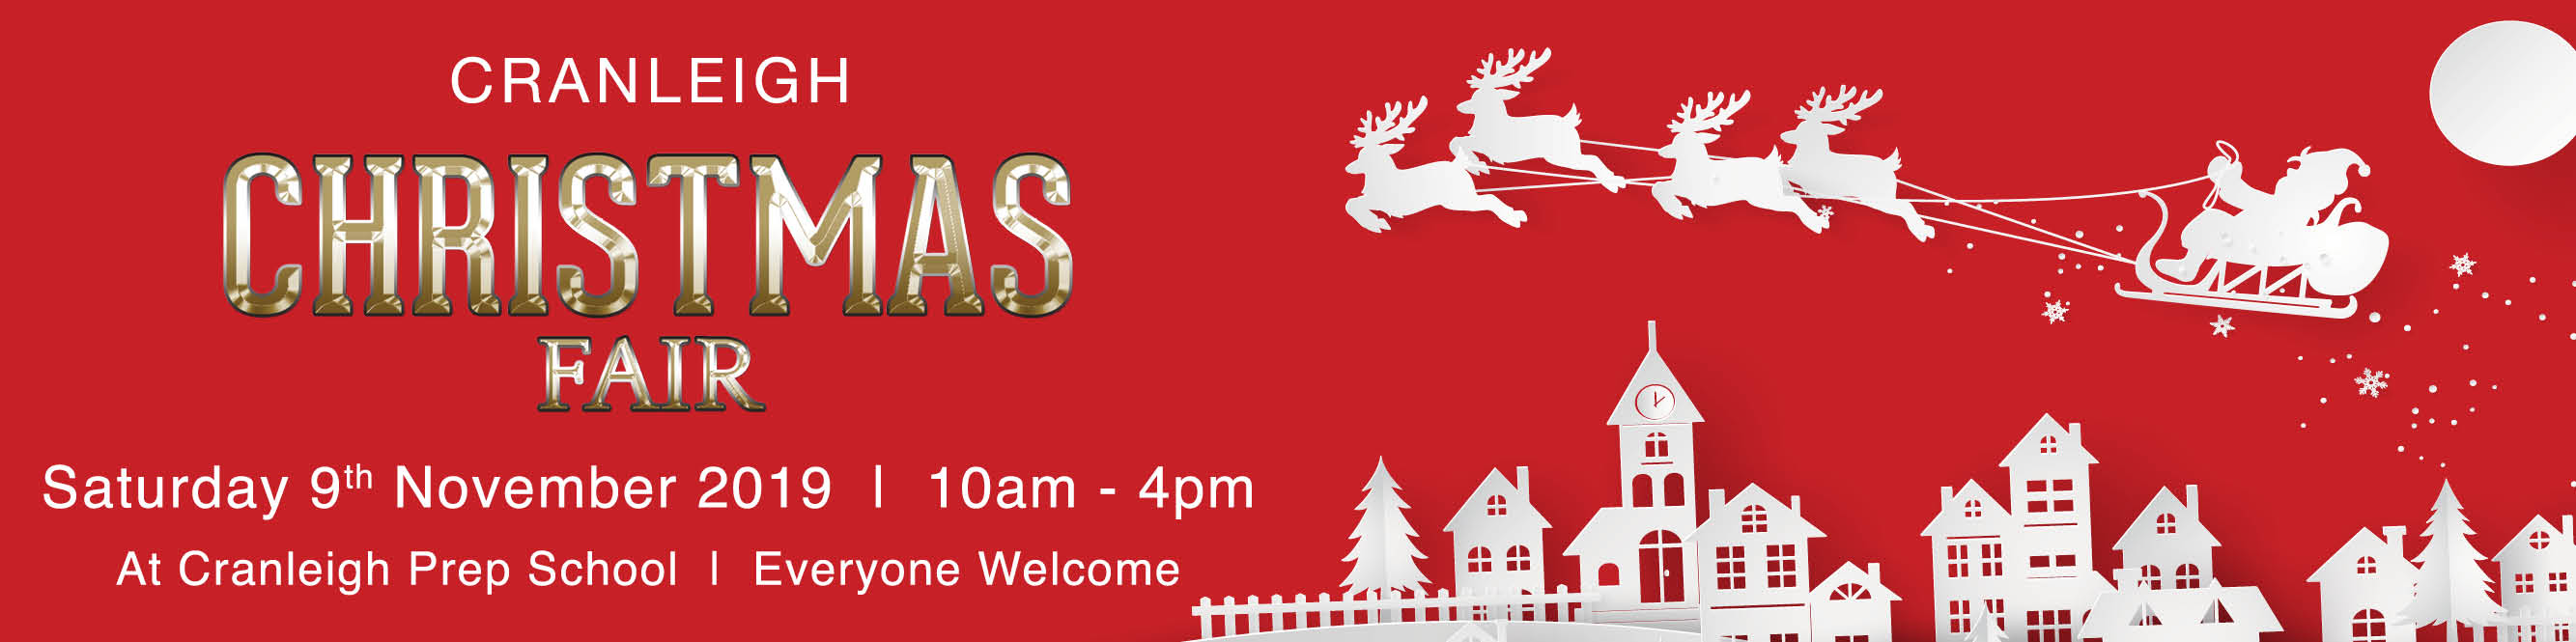 Cranleigh Christmas Fair 2019